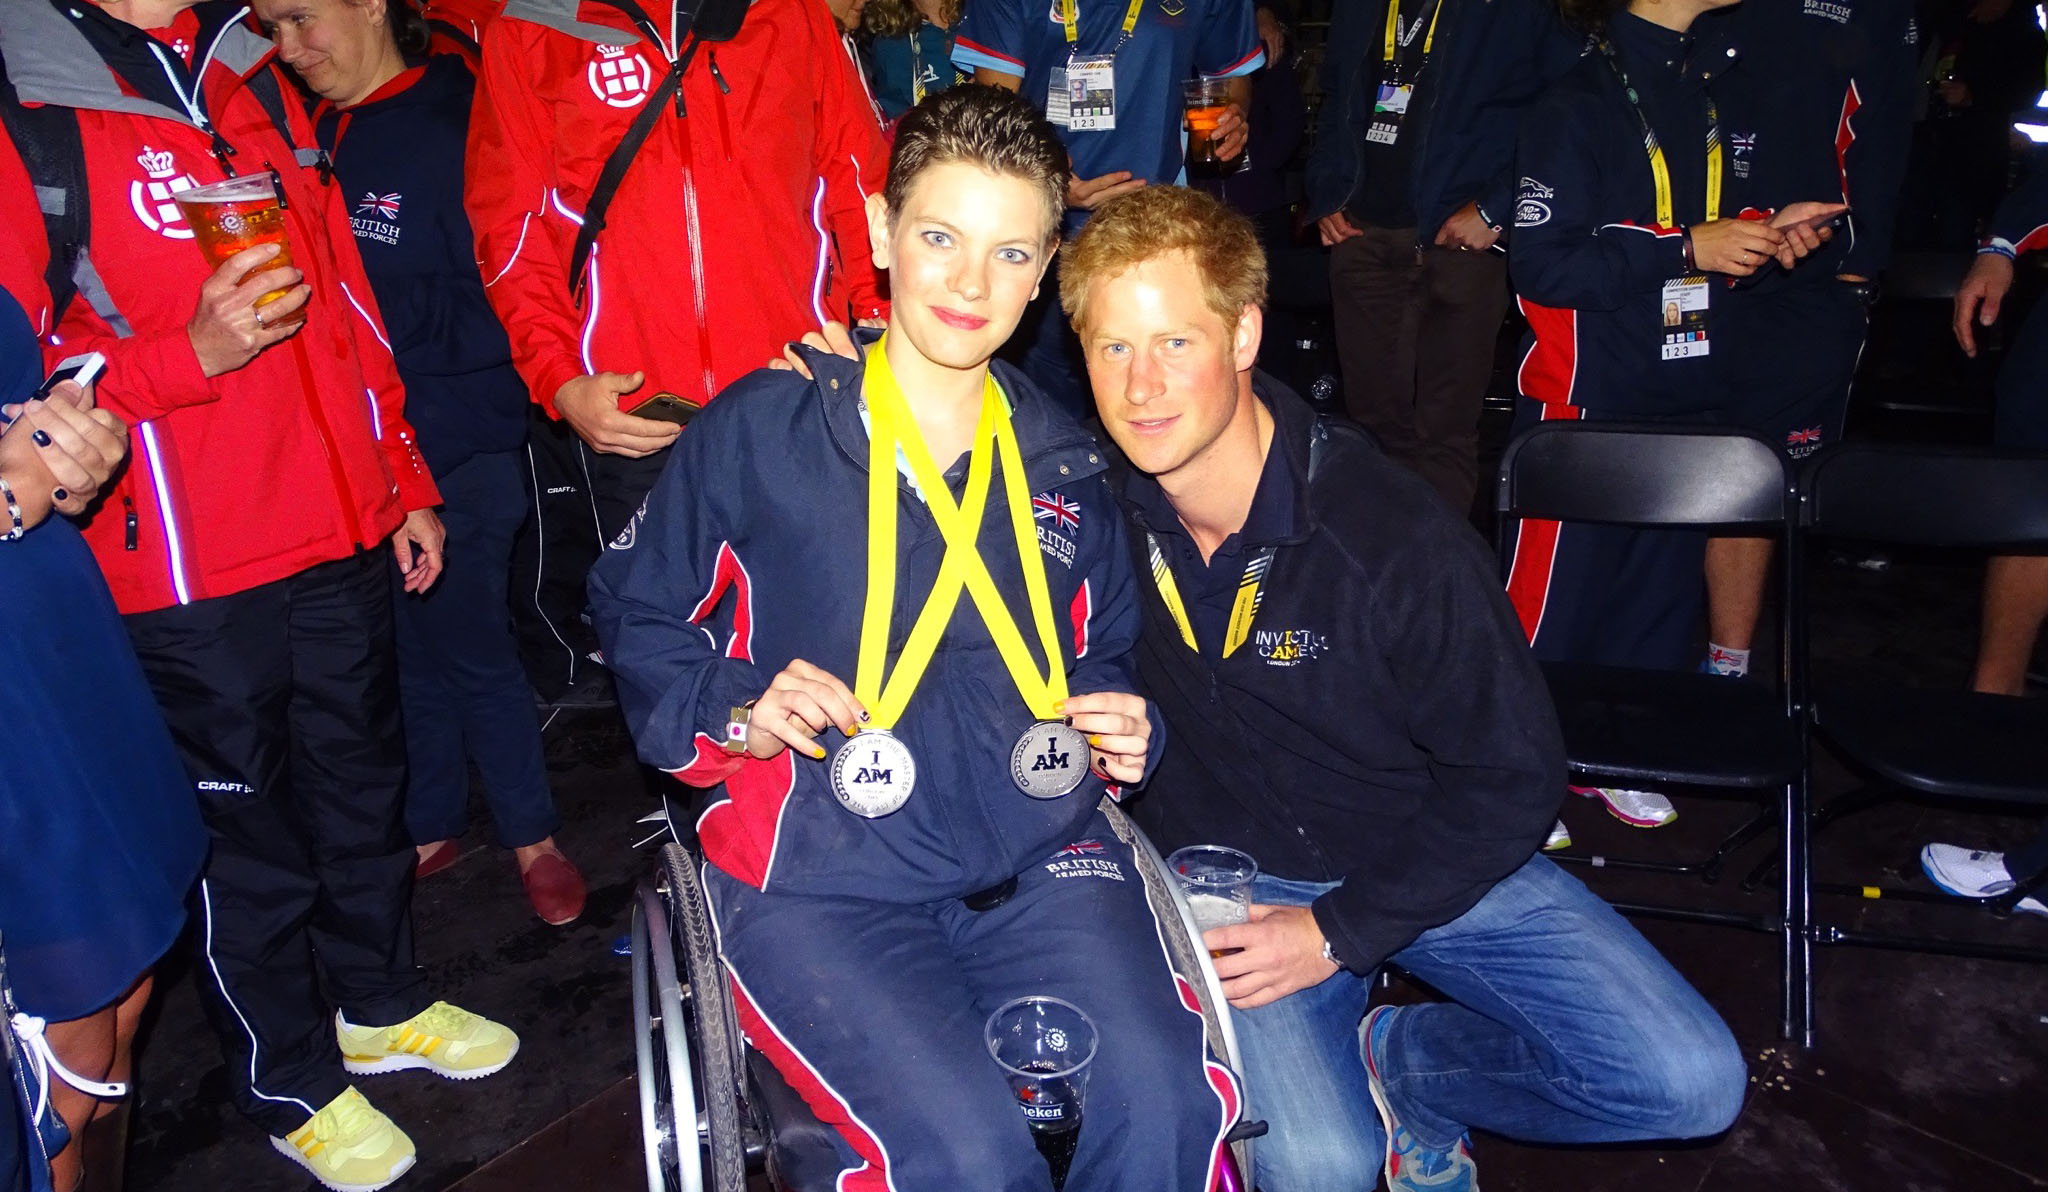 Student Susan Cook with Prince Harry and her silver medals at the Invictus Games.